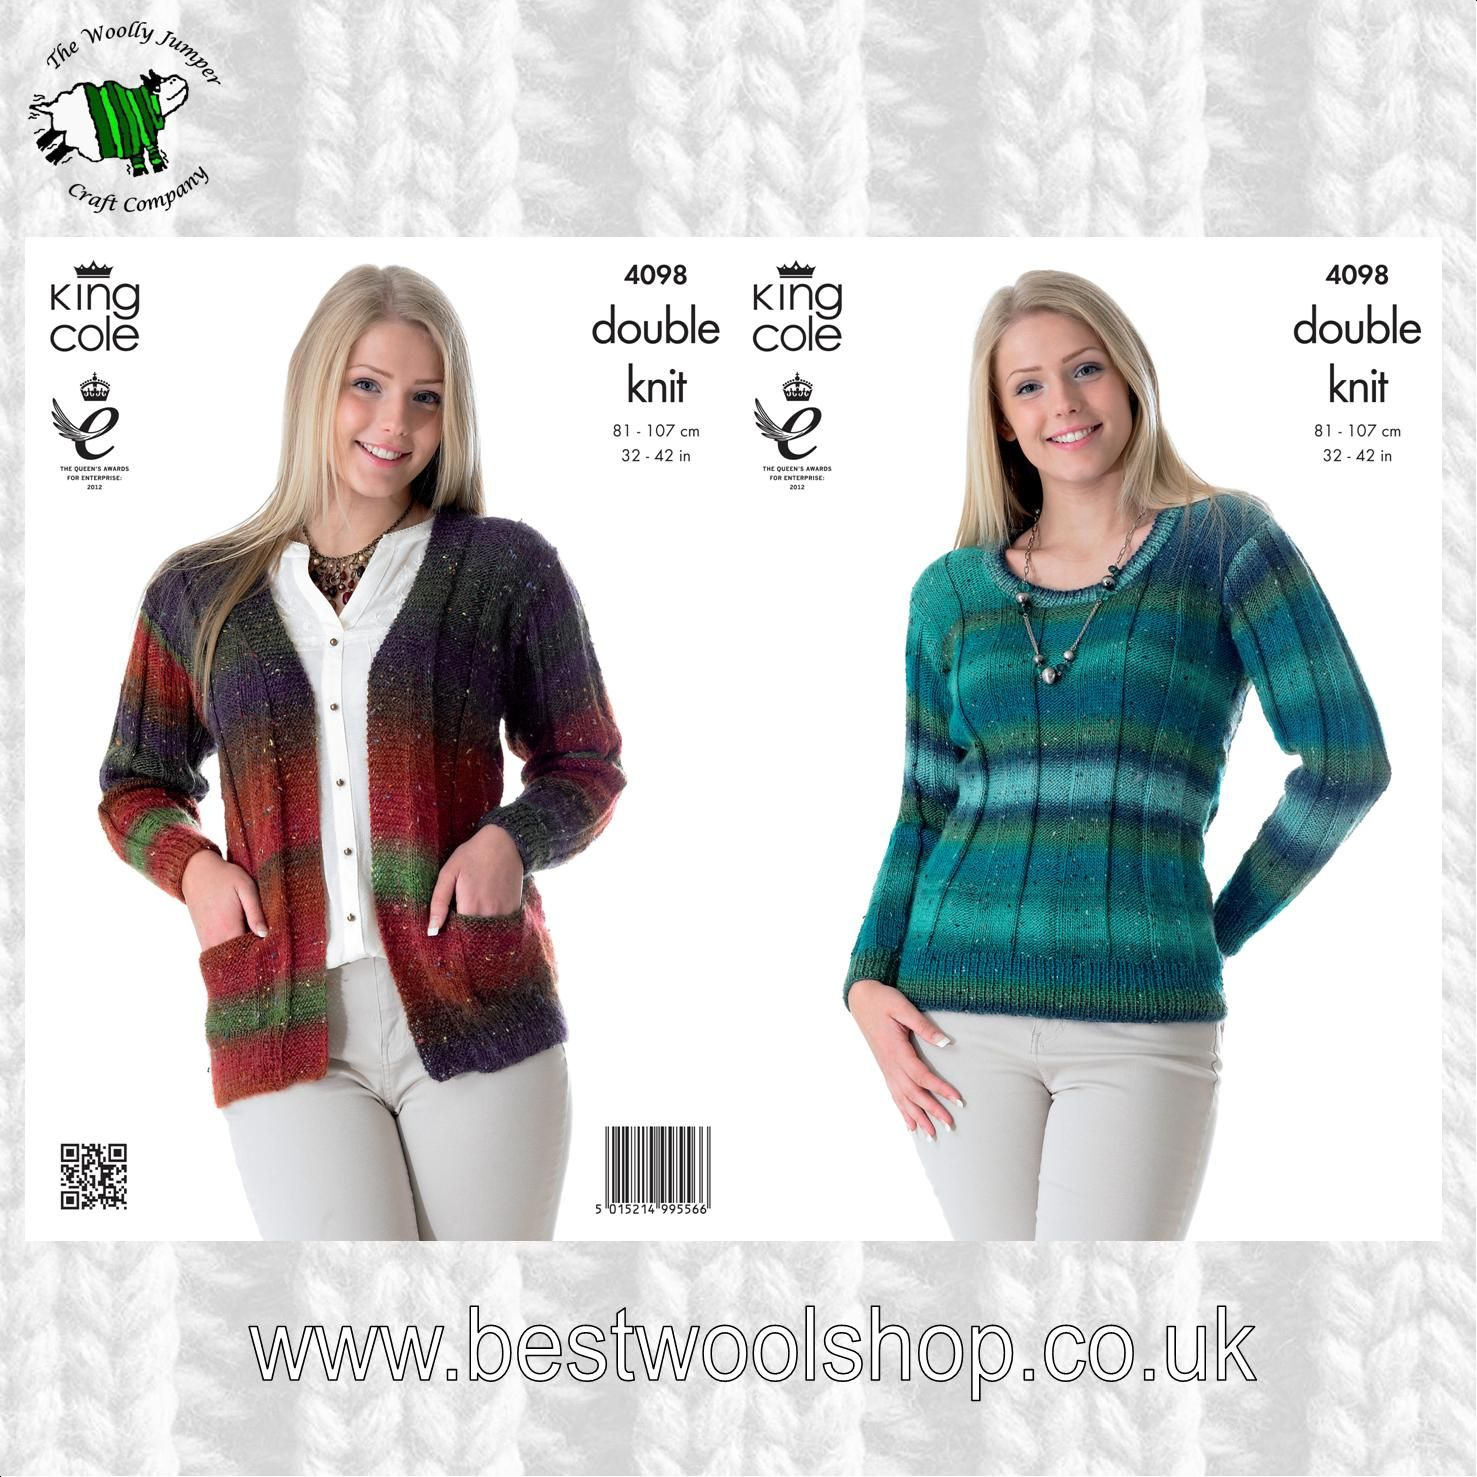 4098 - KING COLE COUNTRY TWEED DK SWEATER & CARDIGAN WITH POCKETS ...